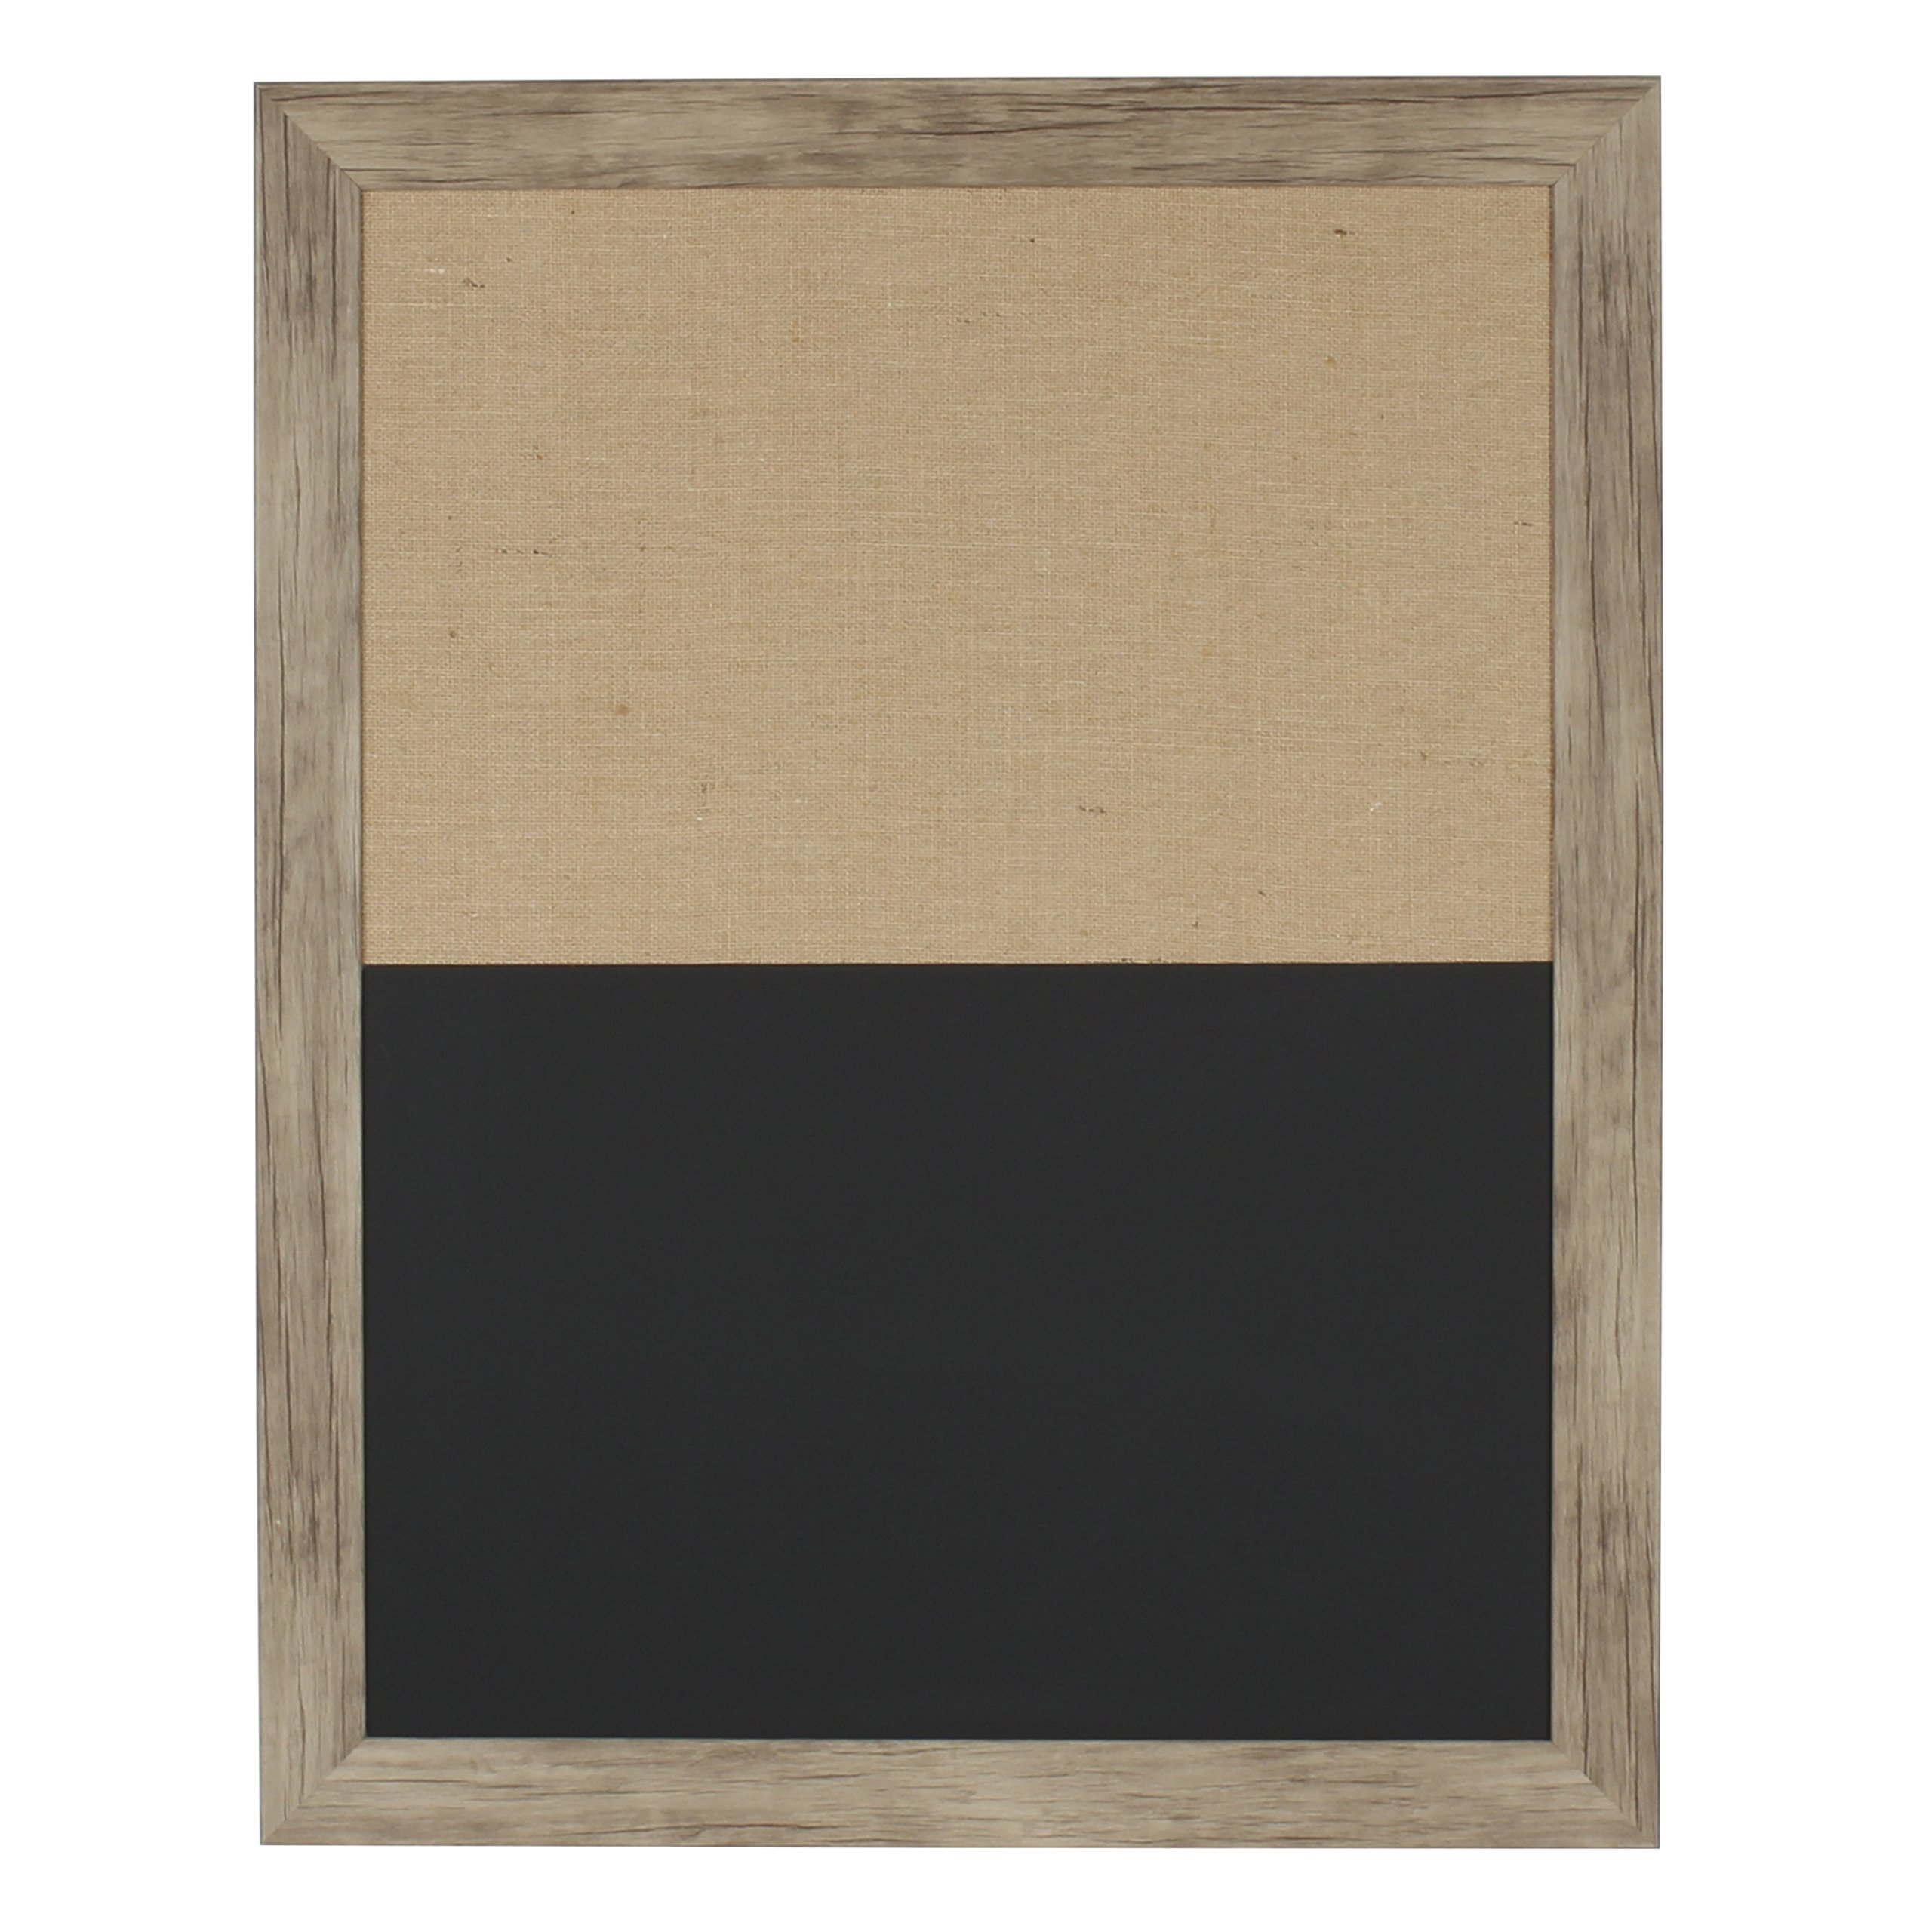 DesignOvation 209364 Beatrice Framed Combination Magnetic Chalkboard and Fabric Pin Board